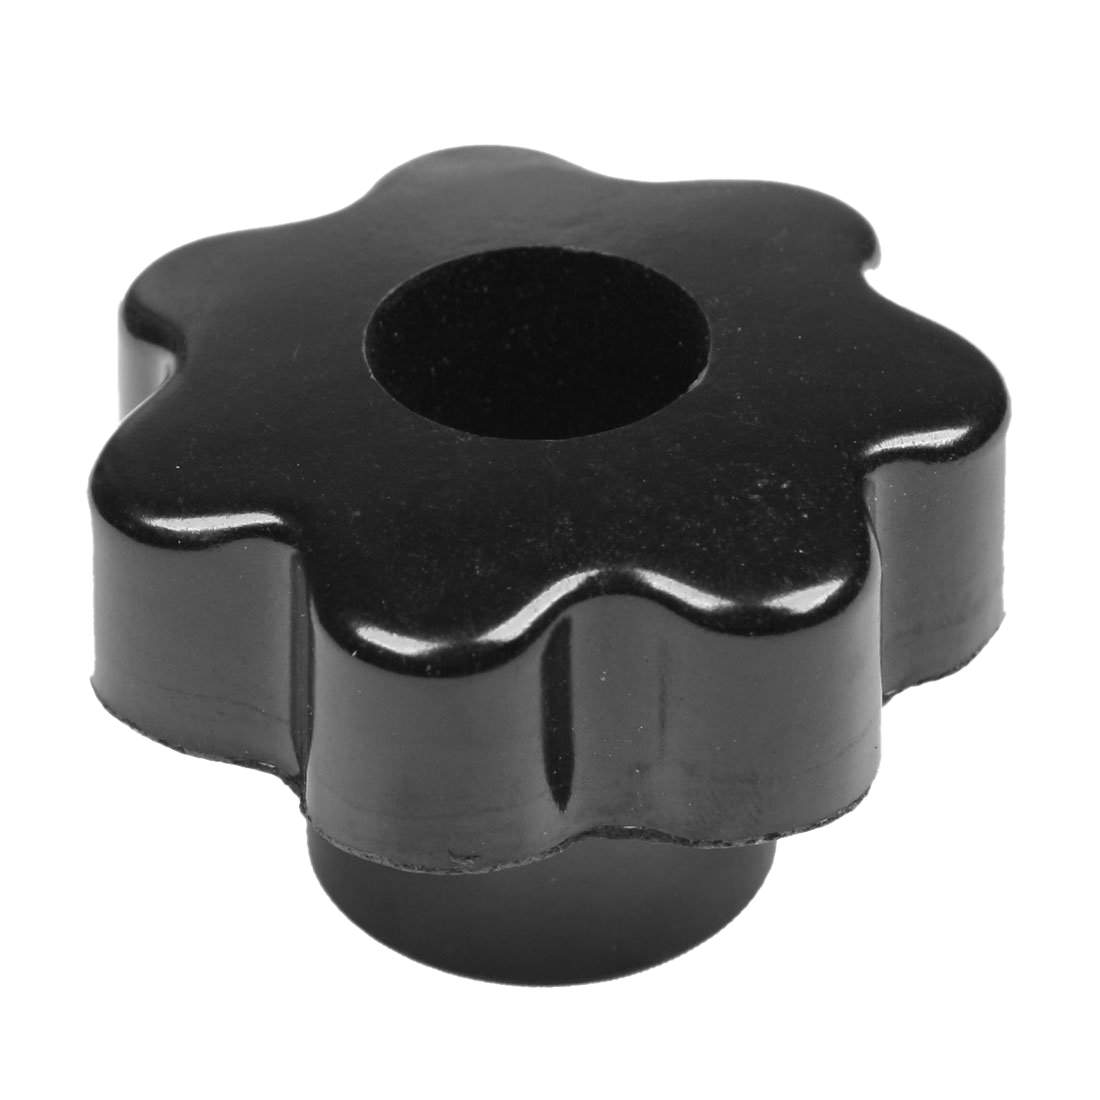 M8 50mm Dia Thread Black Plastic Star Head Clamping Knob Grip clever книга тося бося идёт в зоопарк 3